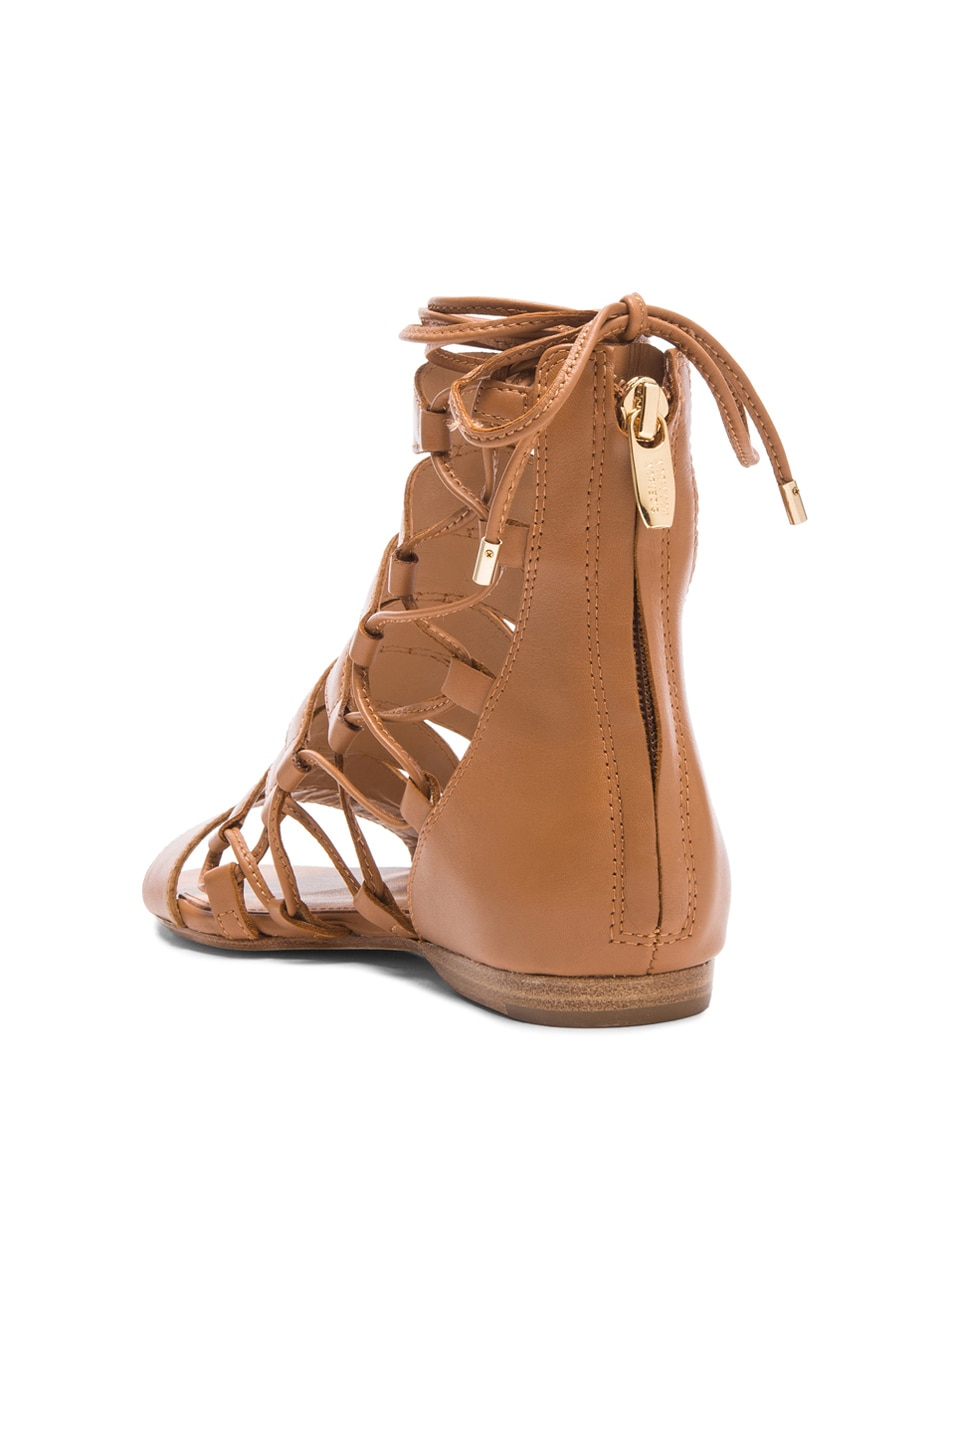 Image 3 of Sigerson Morrison Adal Lace Up Leather Sandals in Cuoio